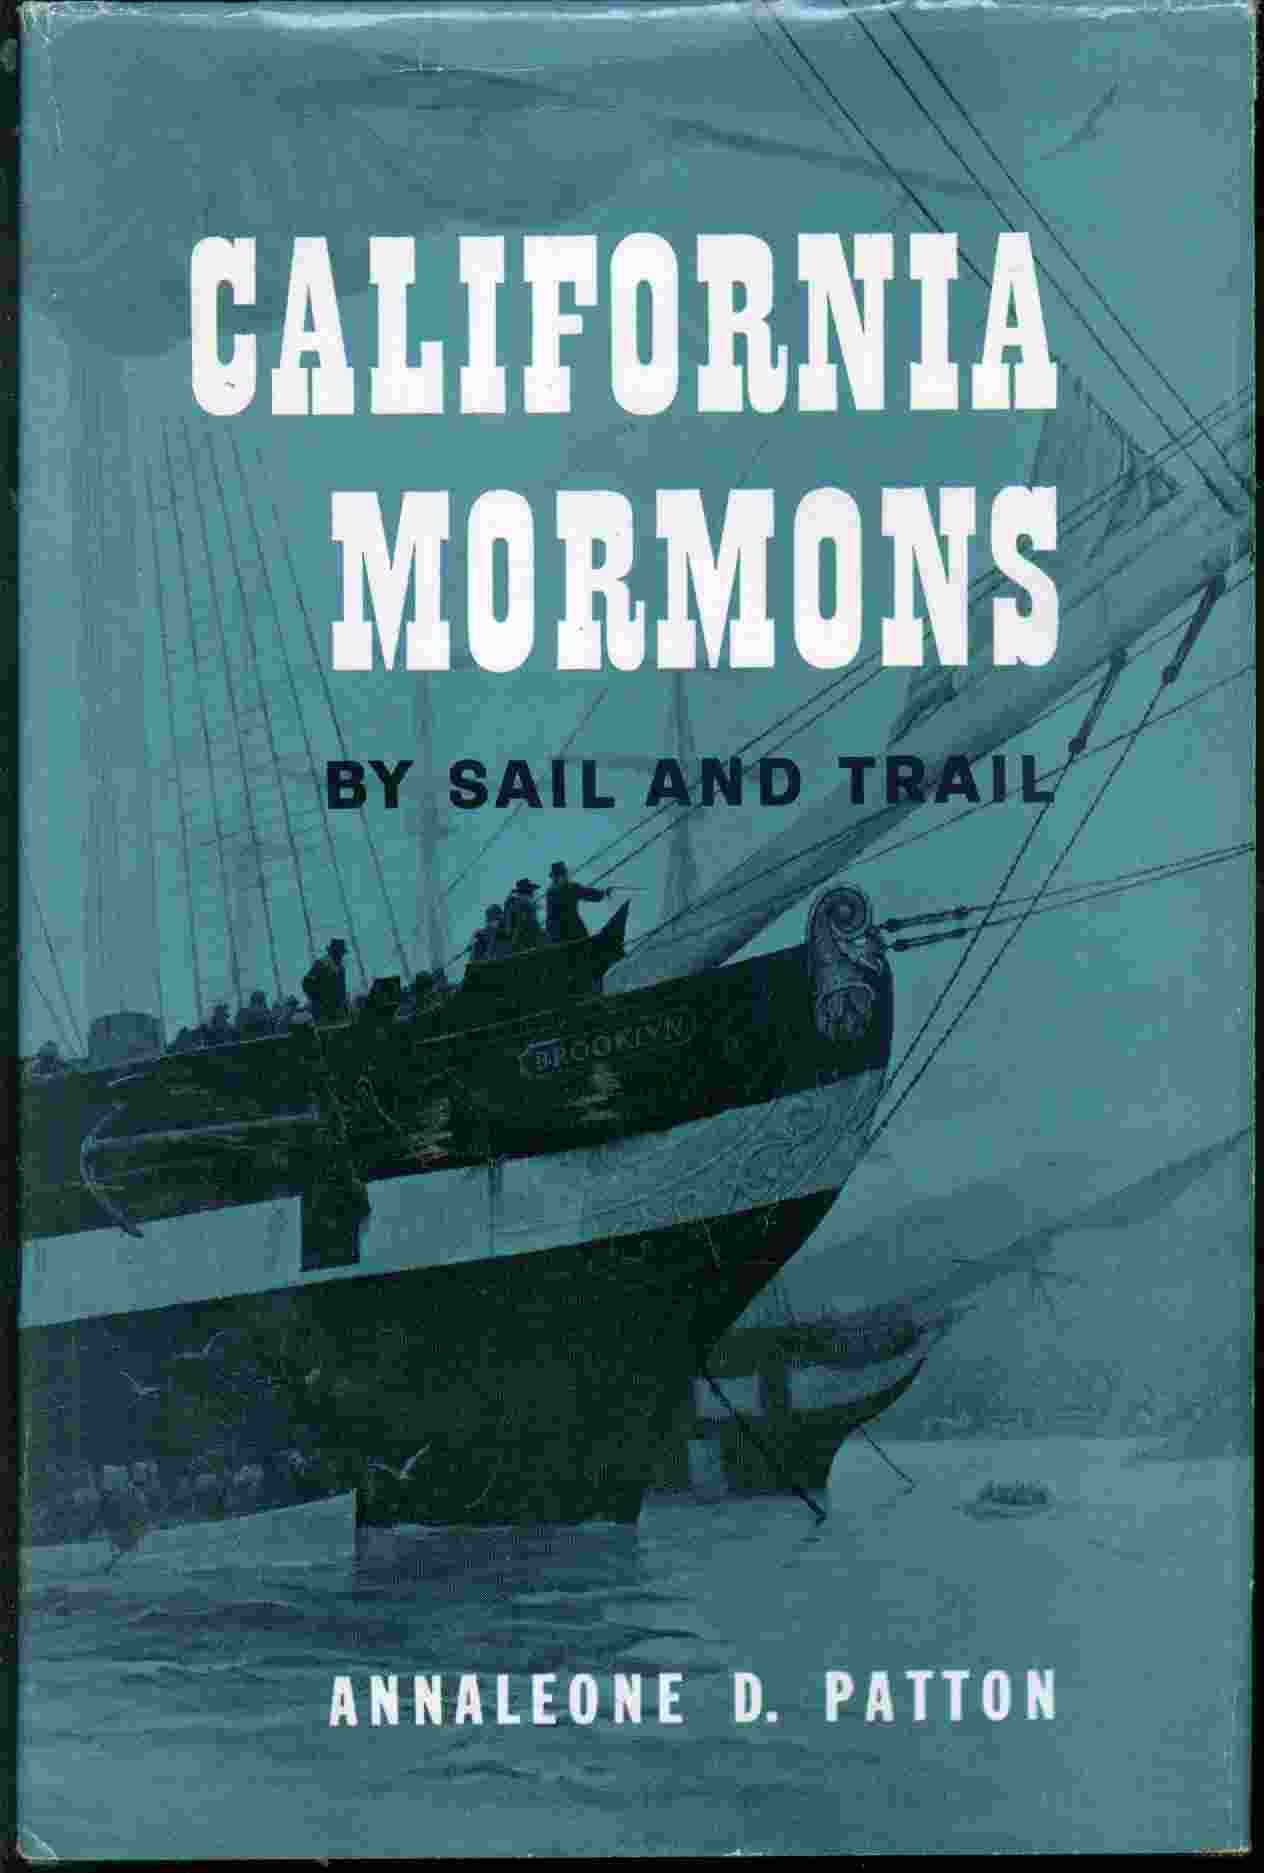 Image for CALIFORNIA MORMONS - BY SAIL AND TRAIL